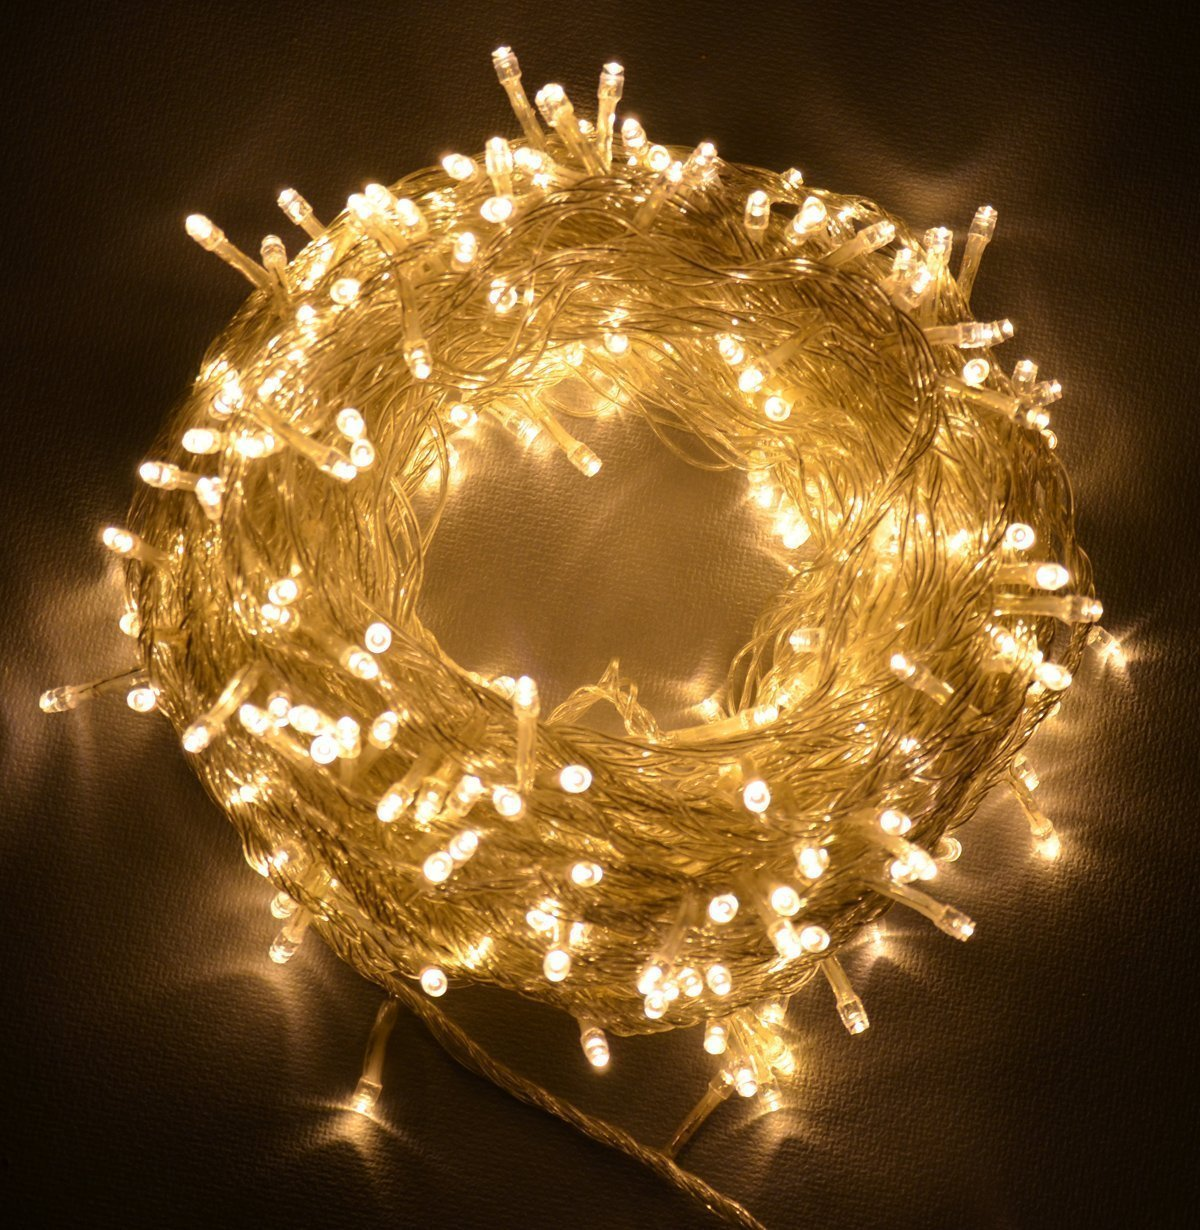 Proxima direct 100200300400500 led string fairy lights for proxima direct 100200300400500 led string fairy lights for christmas tree party wedding events garden 8 lighting modes memory function warm white mozeypictures Choice Image